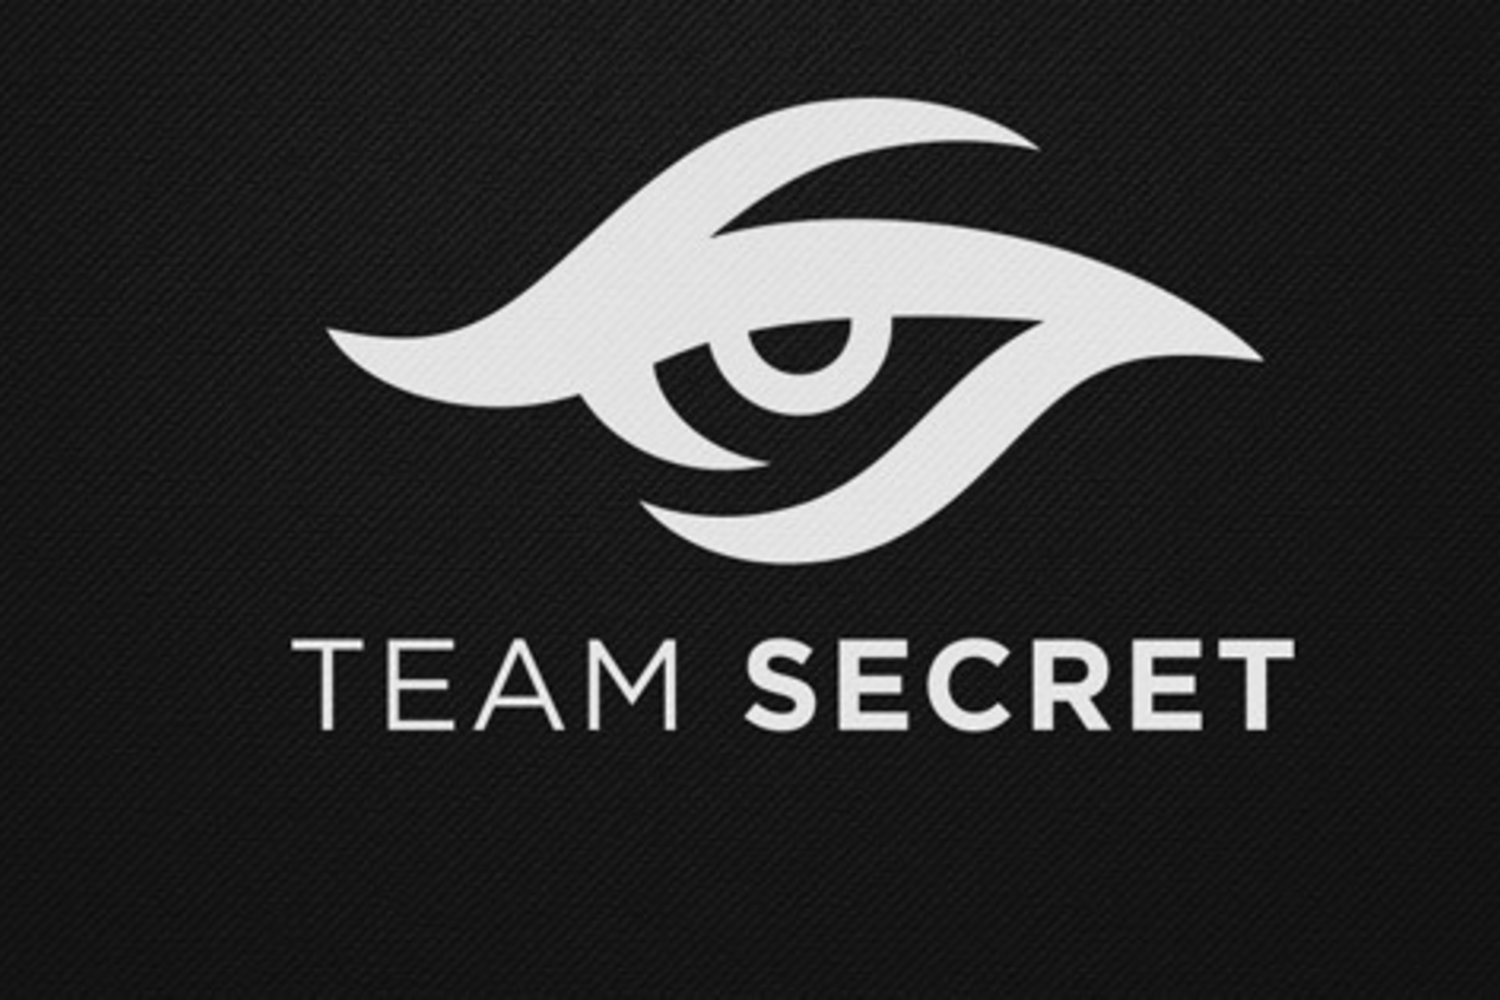 Team Secret roster changes, Khezu, MP out of the team